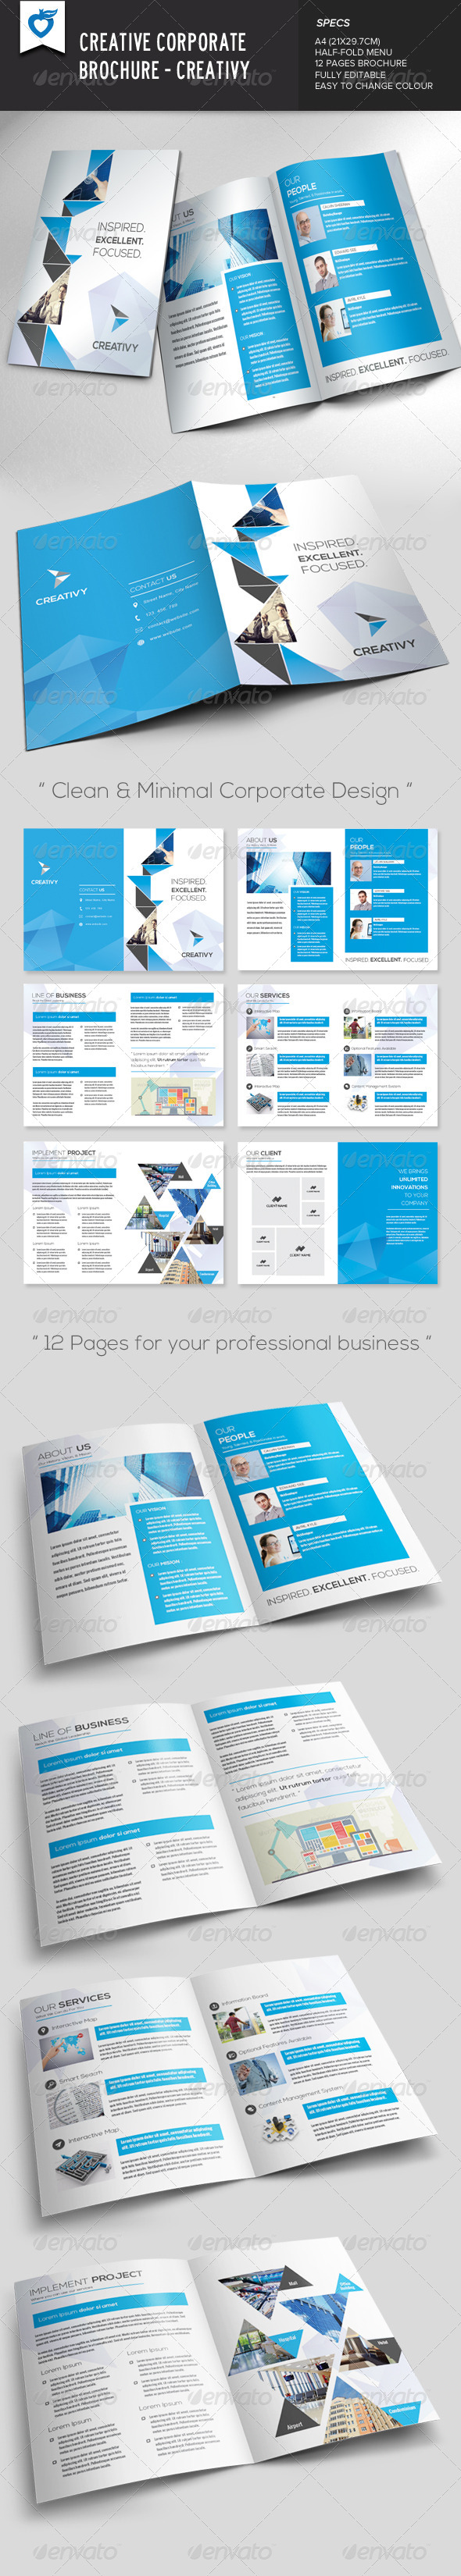 GraphicRiver Creative Corporate Brochure Creativy 7614842